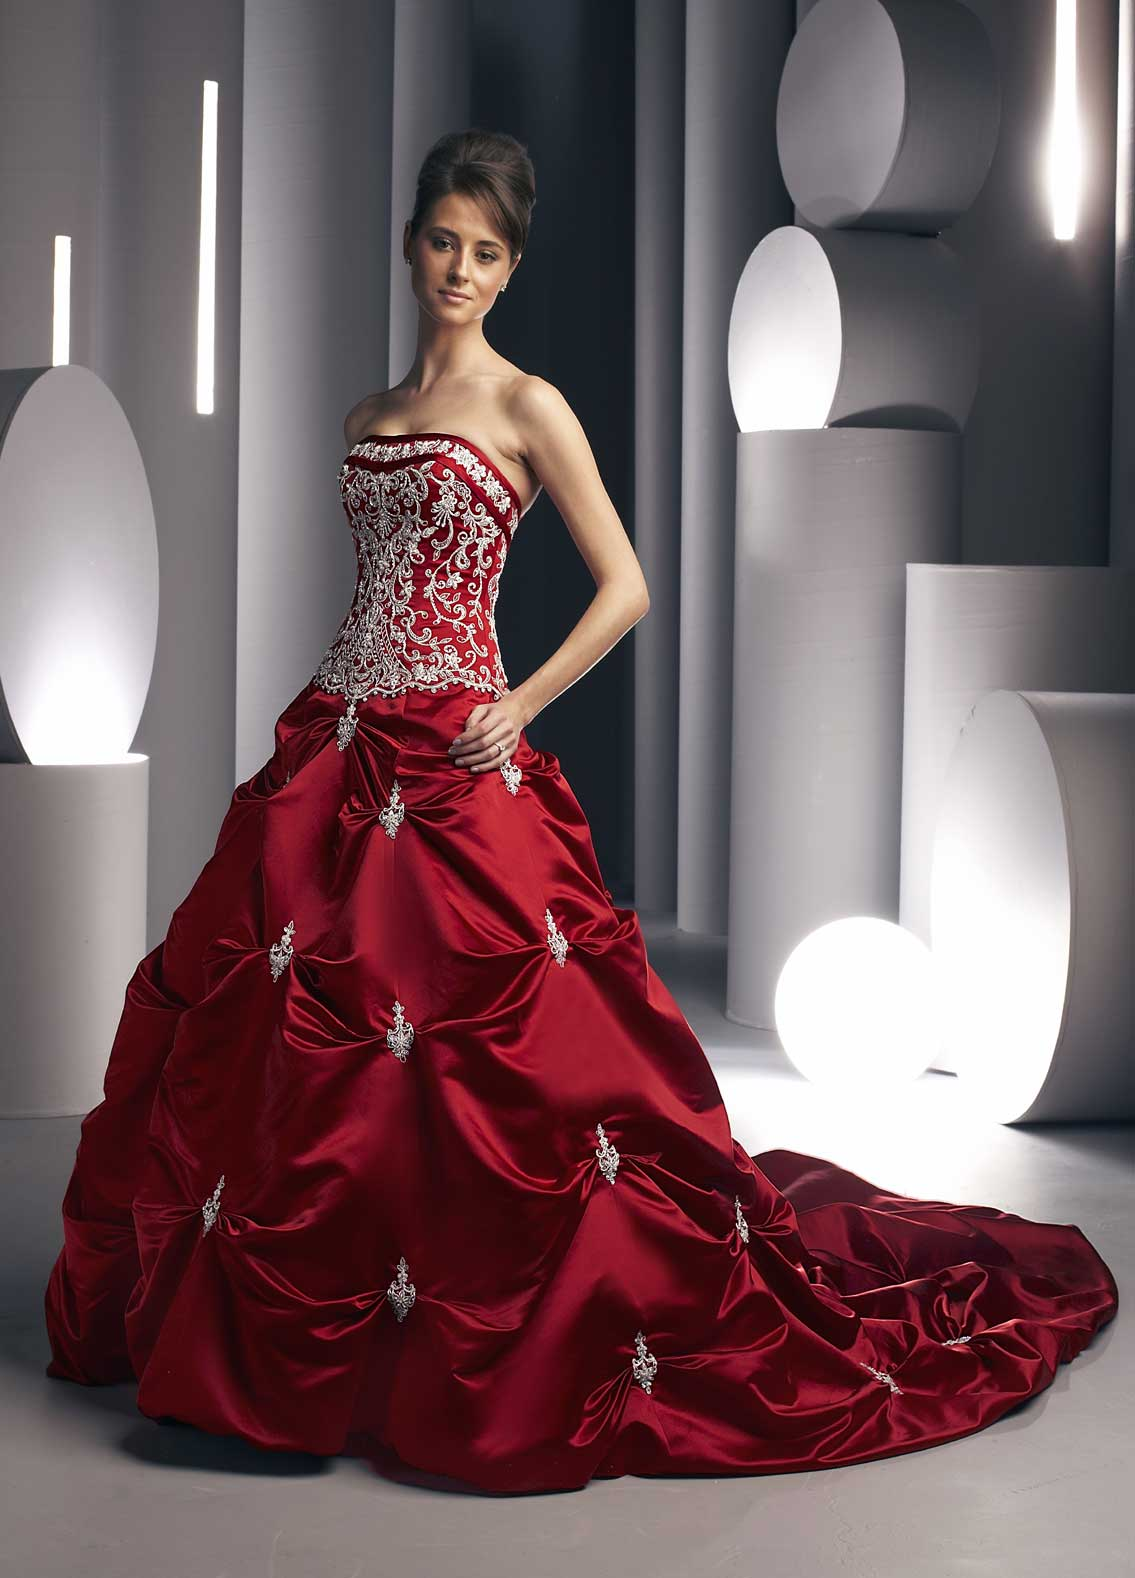 Red Strapless Wedding Dress With Train